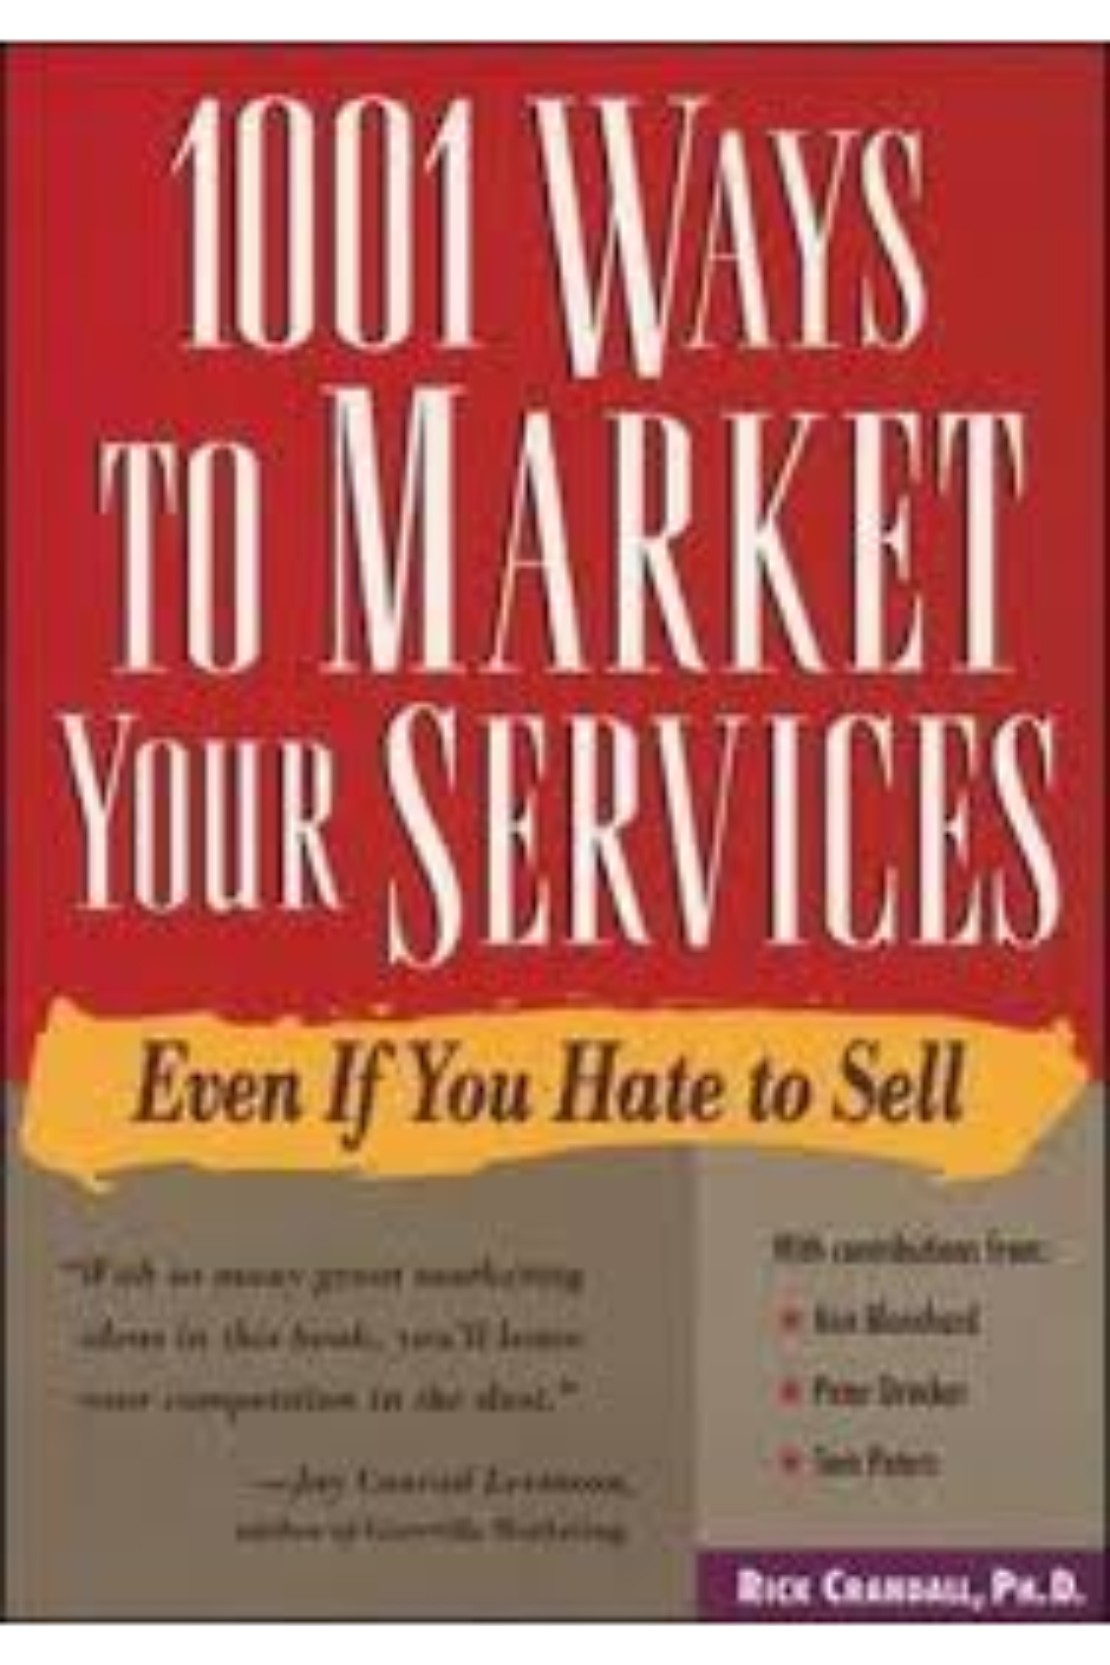 1001 Ways To Market Tour Services: Even If You Hate So Sell (PB)